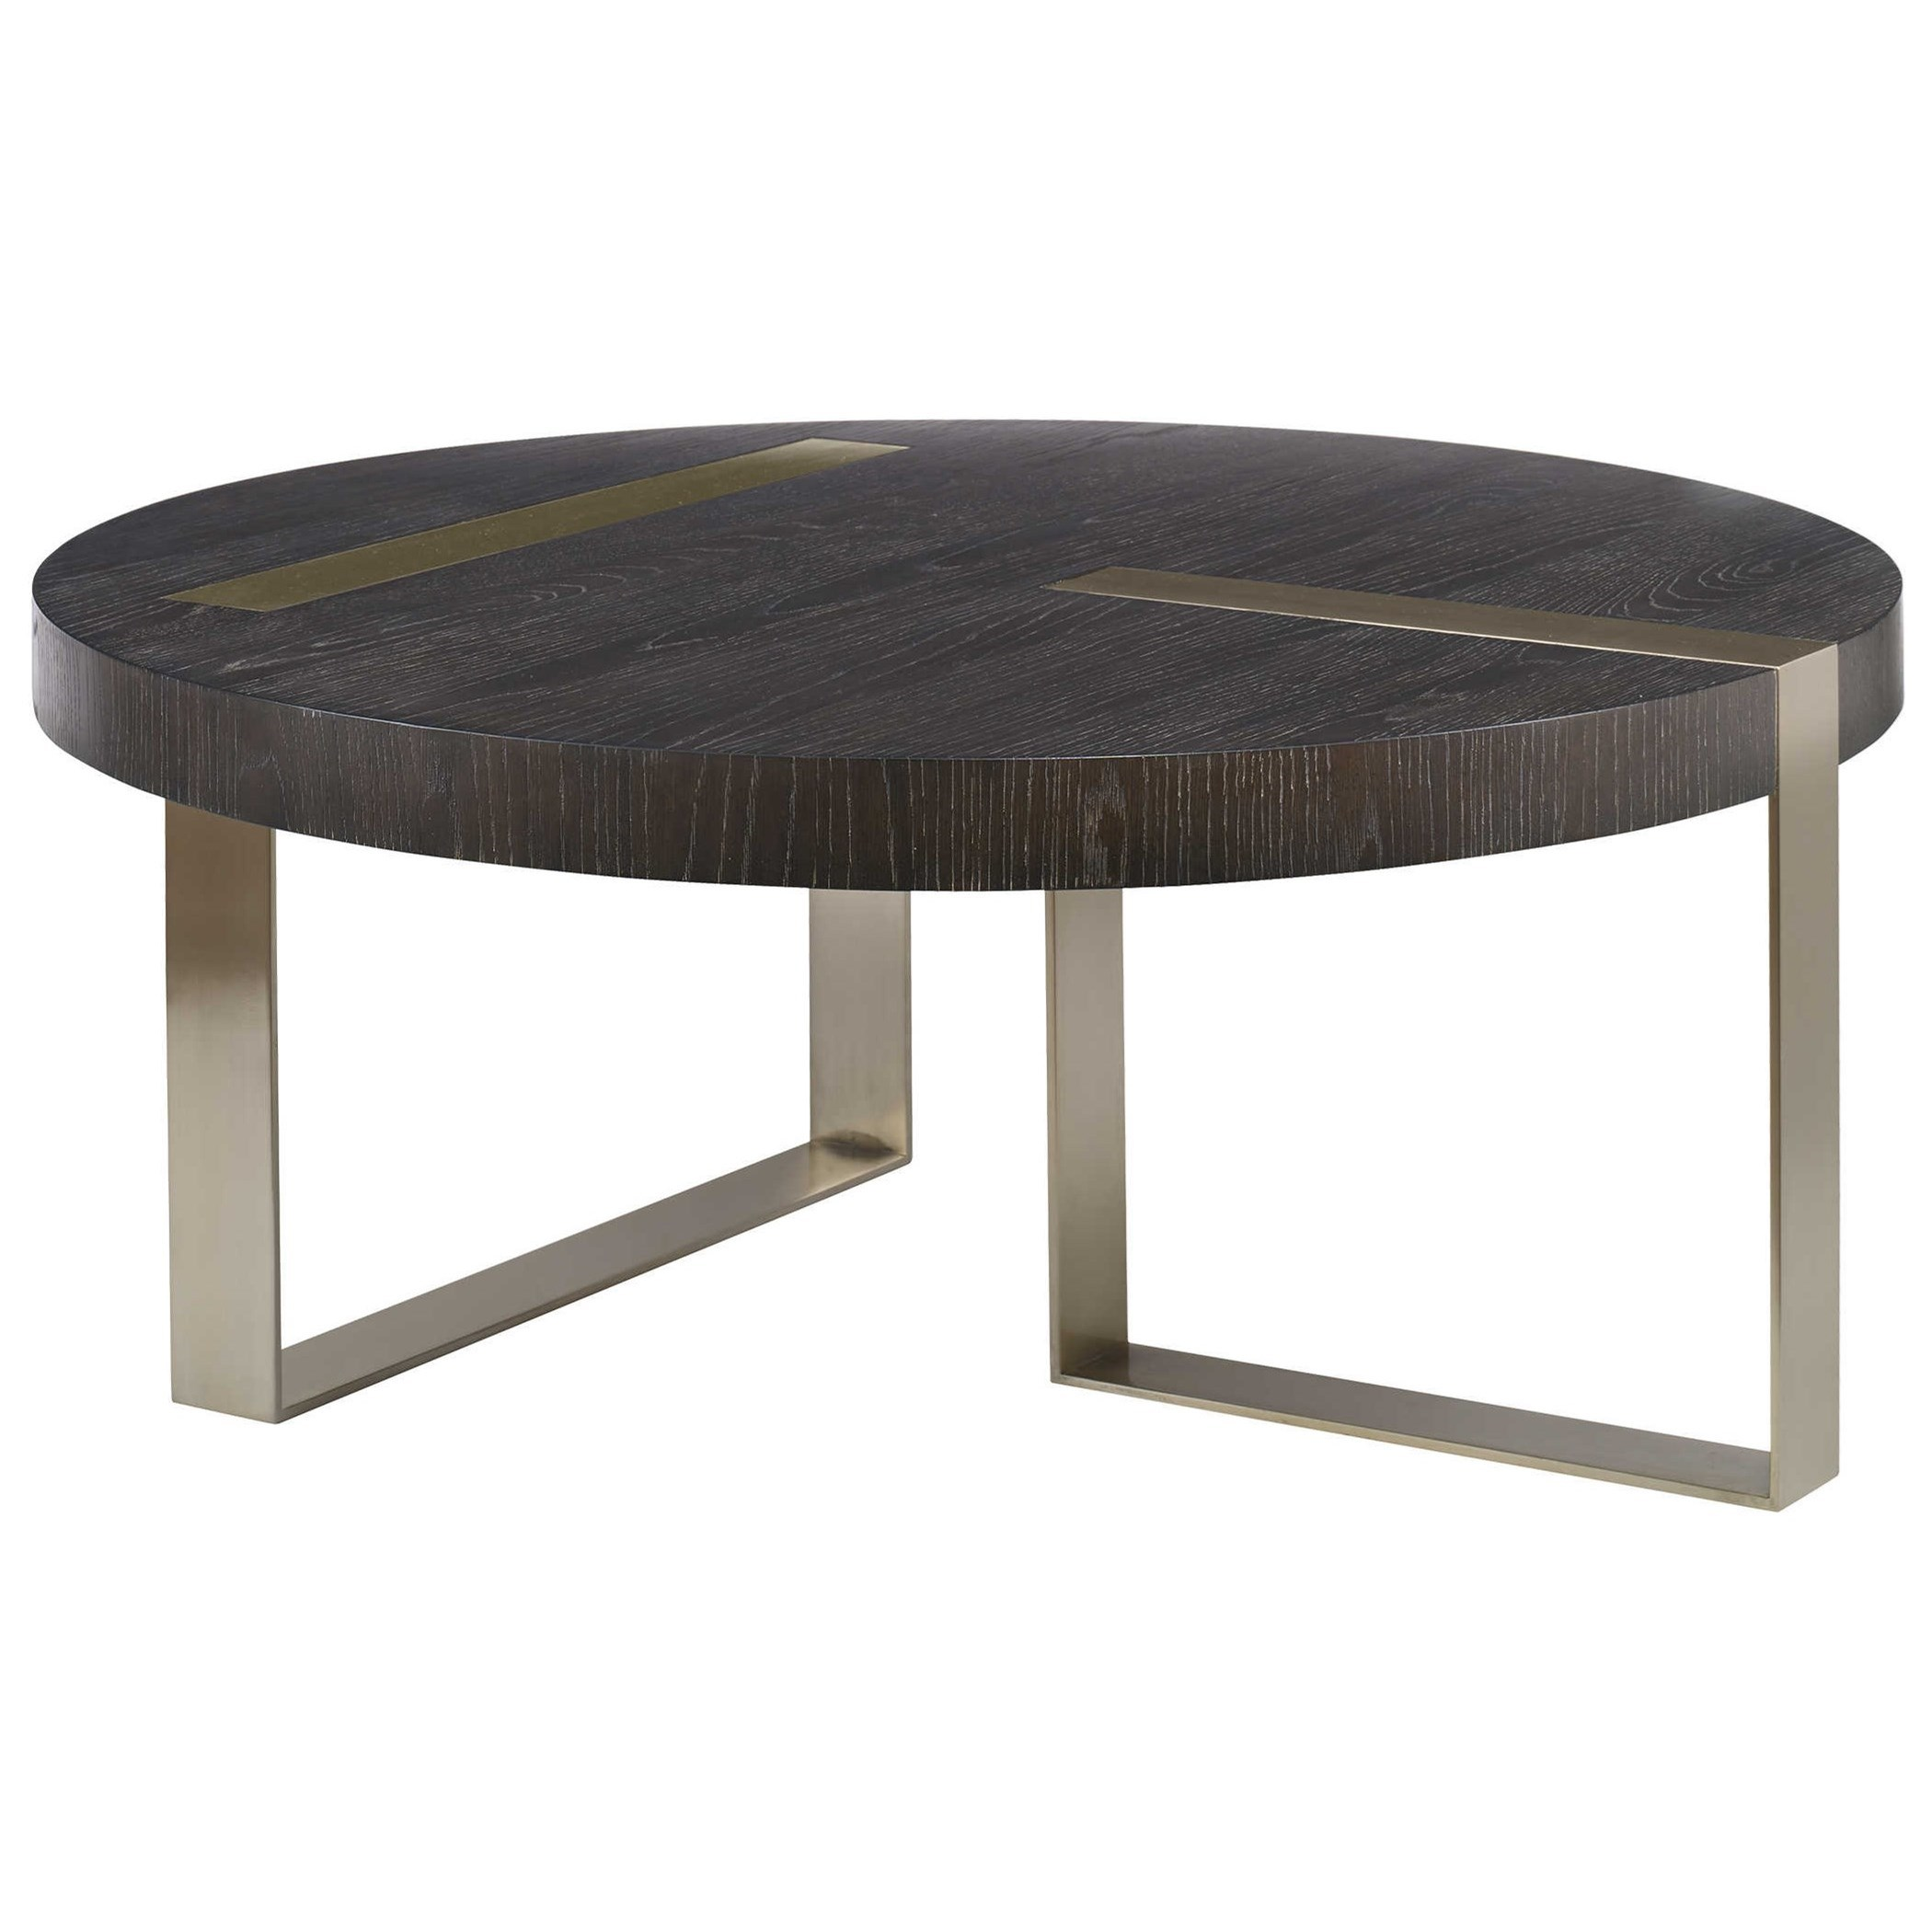 Accent Furniture - Occasional Tables Converge Round Coffee Table by Uttermost at Factory Direct Furniture